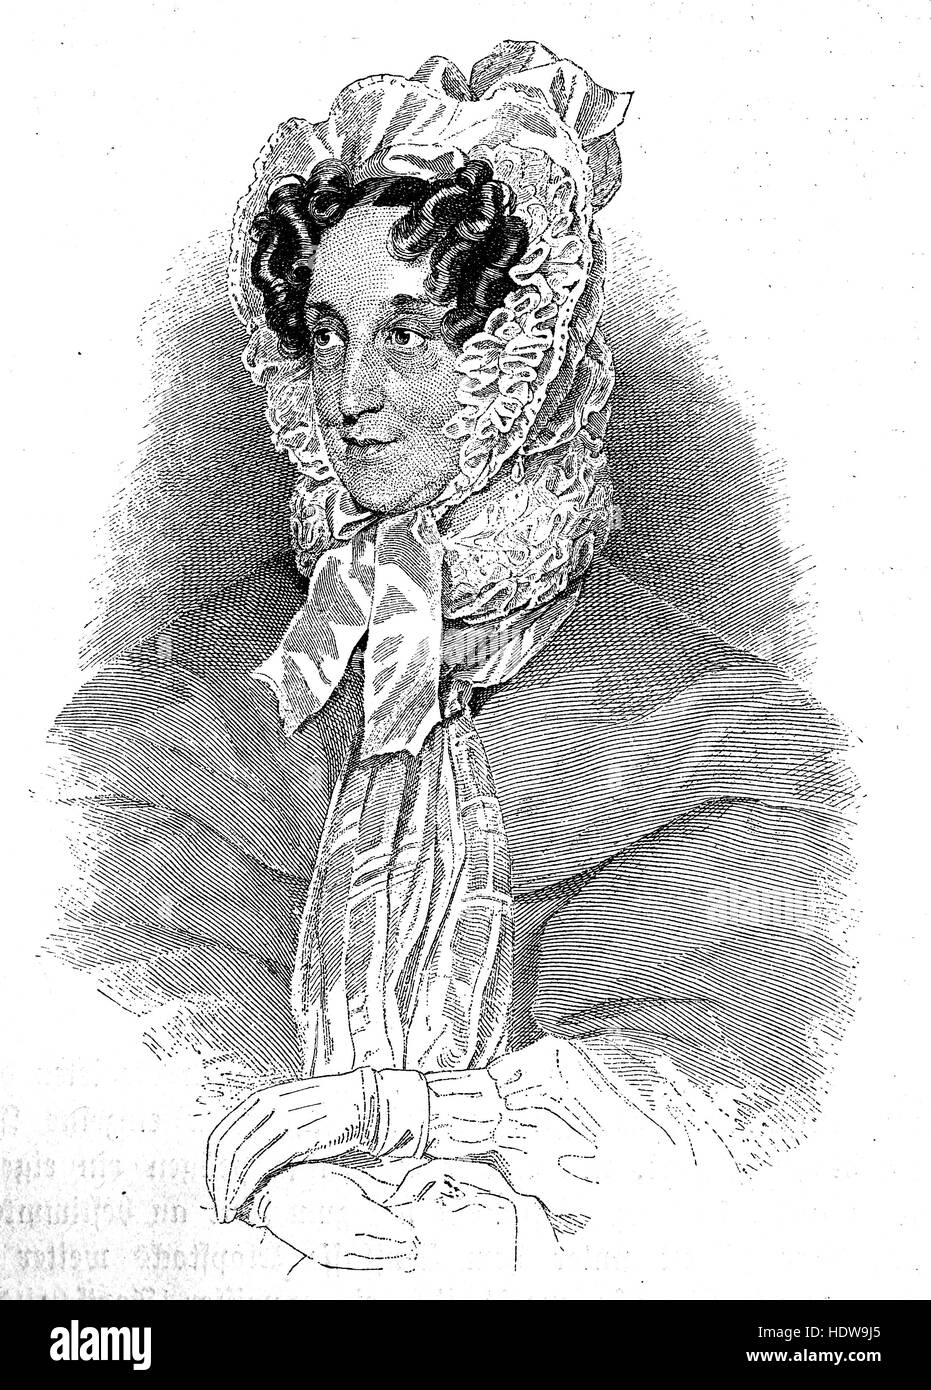 Karoline Pichler or Caroline Pichler, 1769-1843, an Austrian novelist, woodcut from the year 1880 - Stock Image